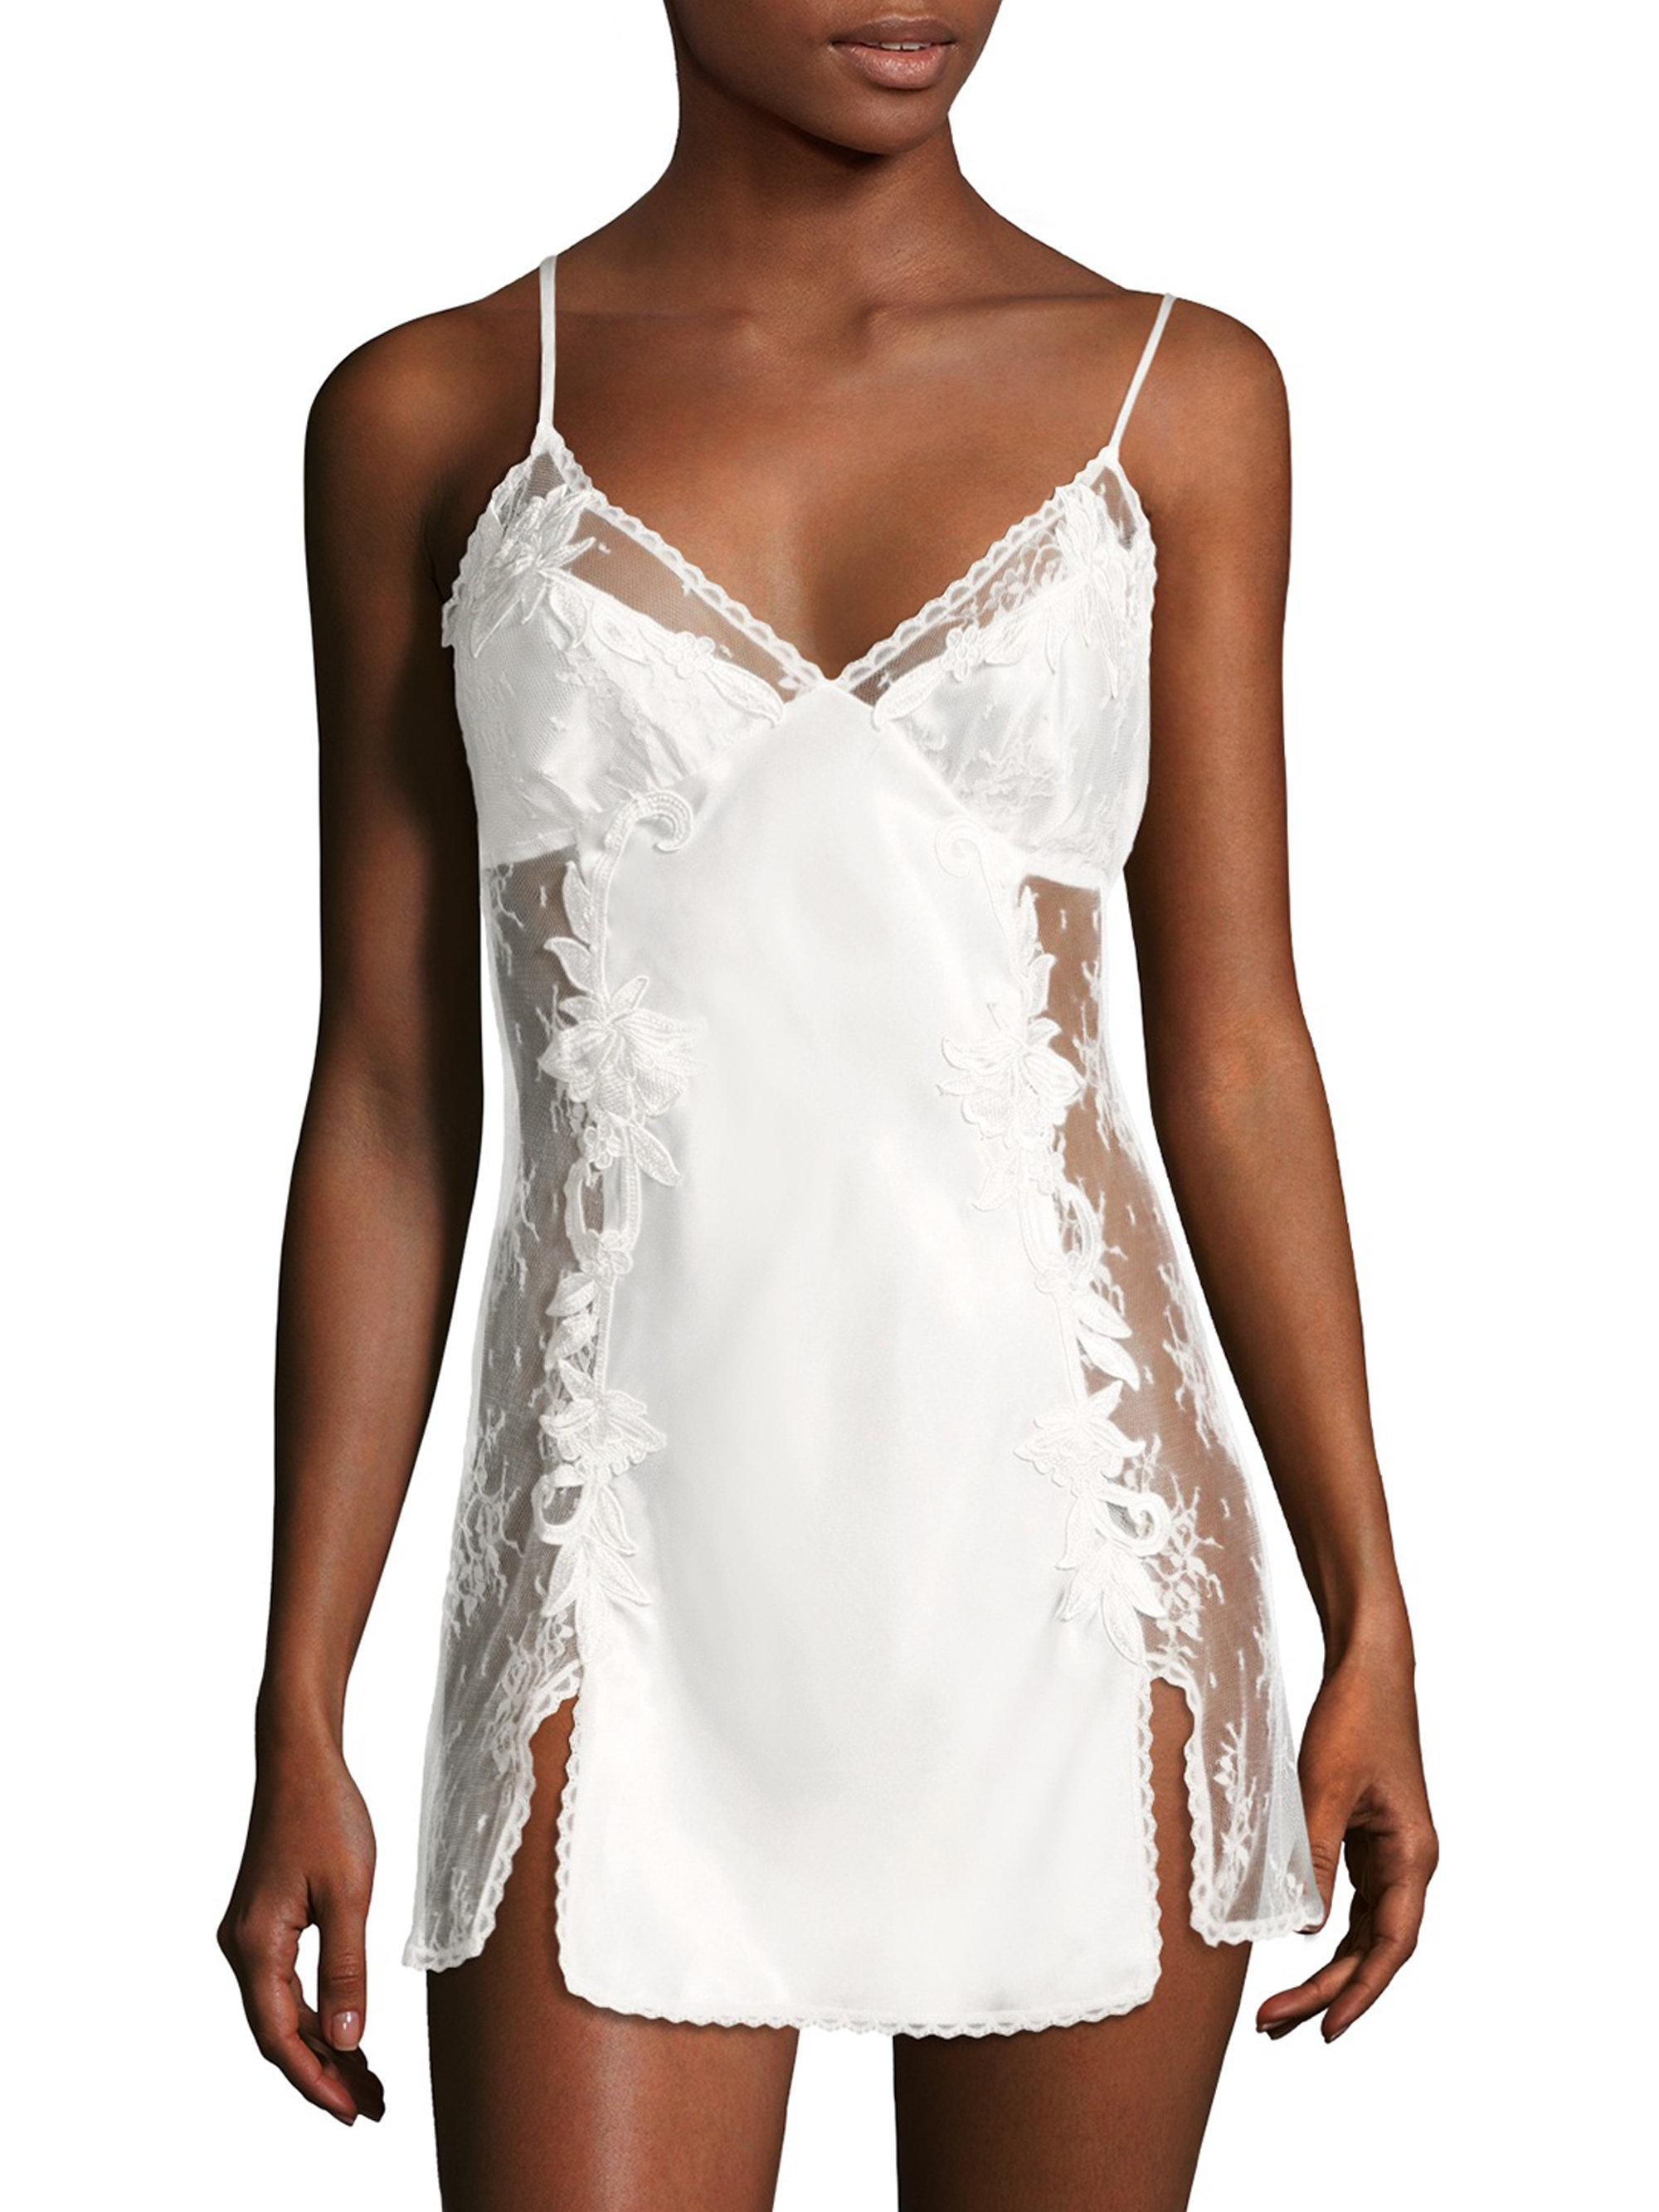 Lyst - Jonquil Lace Chemise in White ca024478d